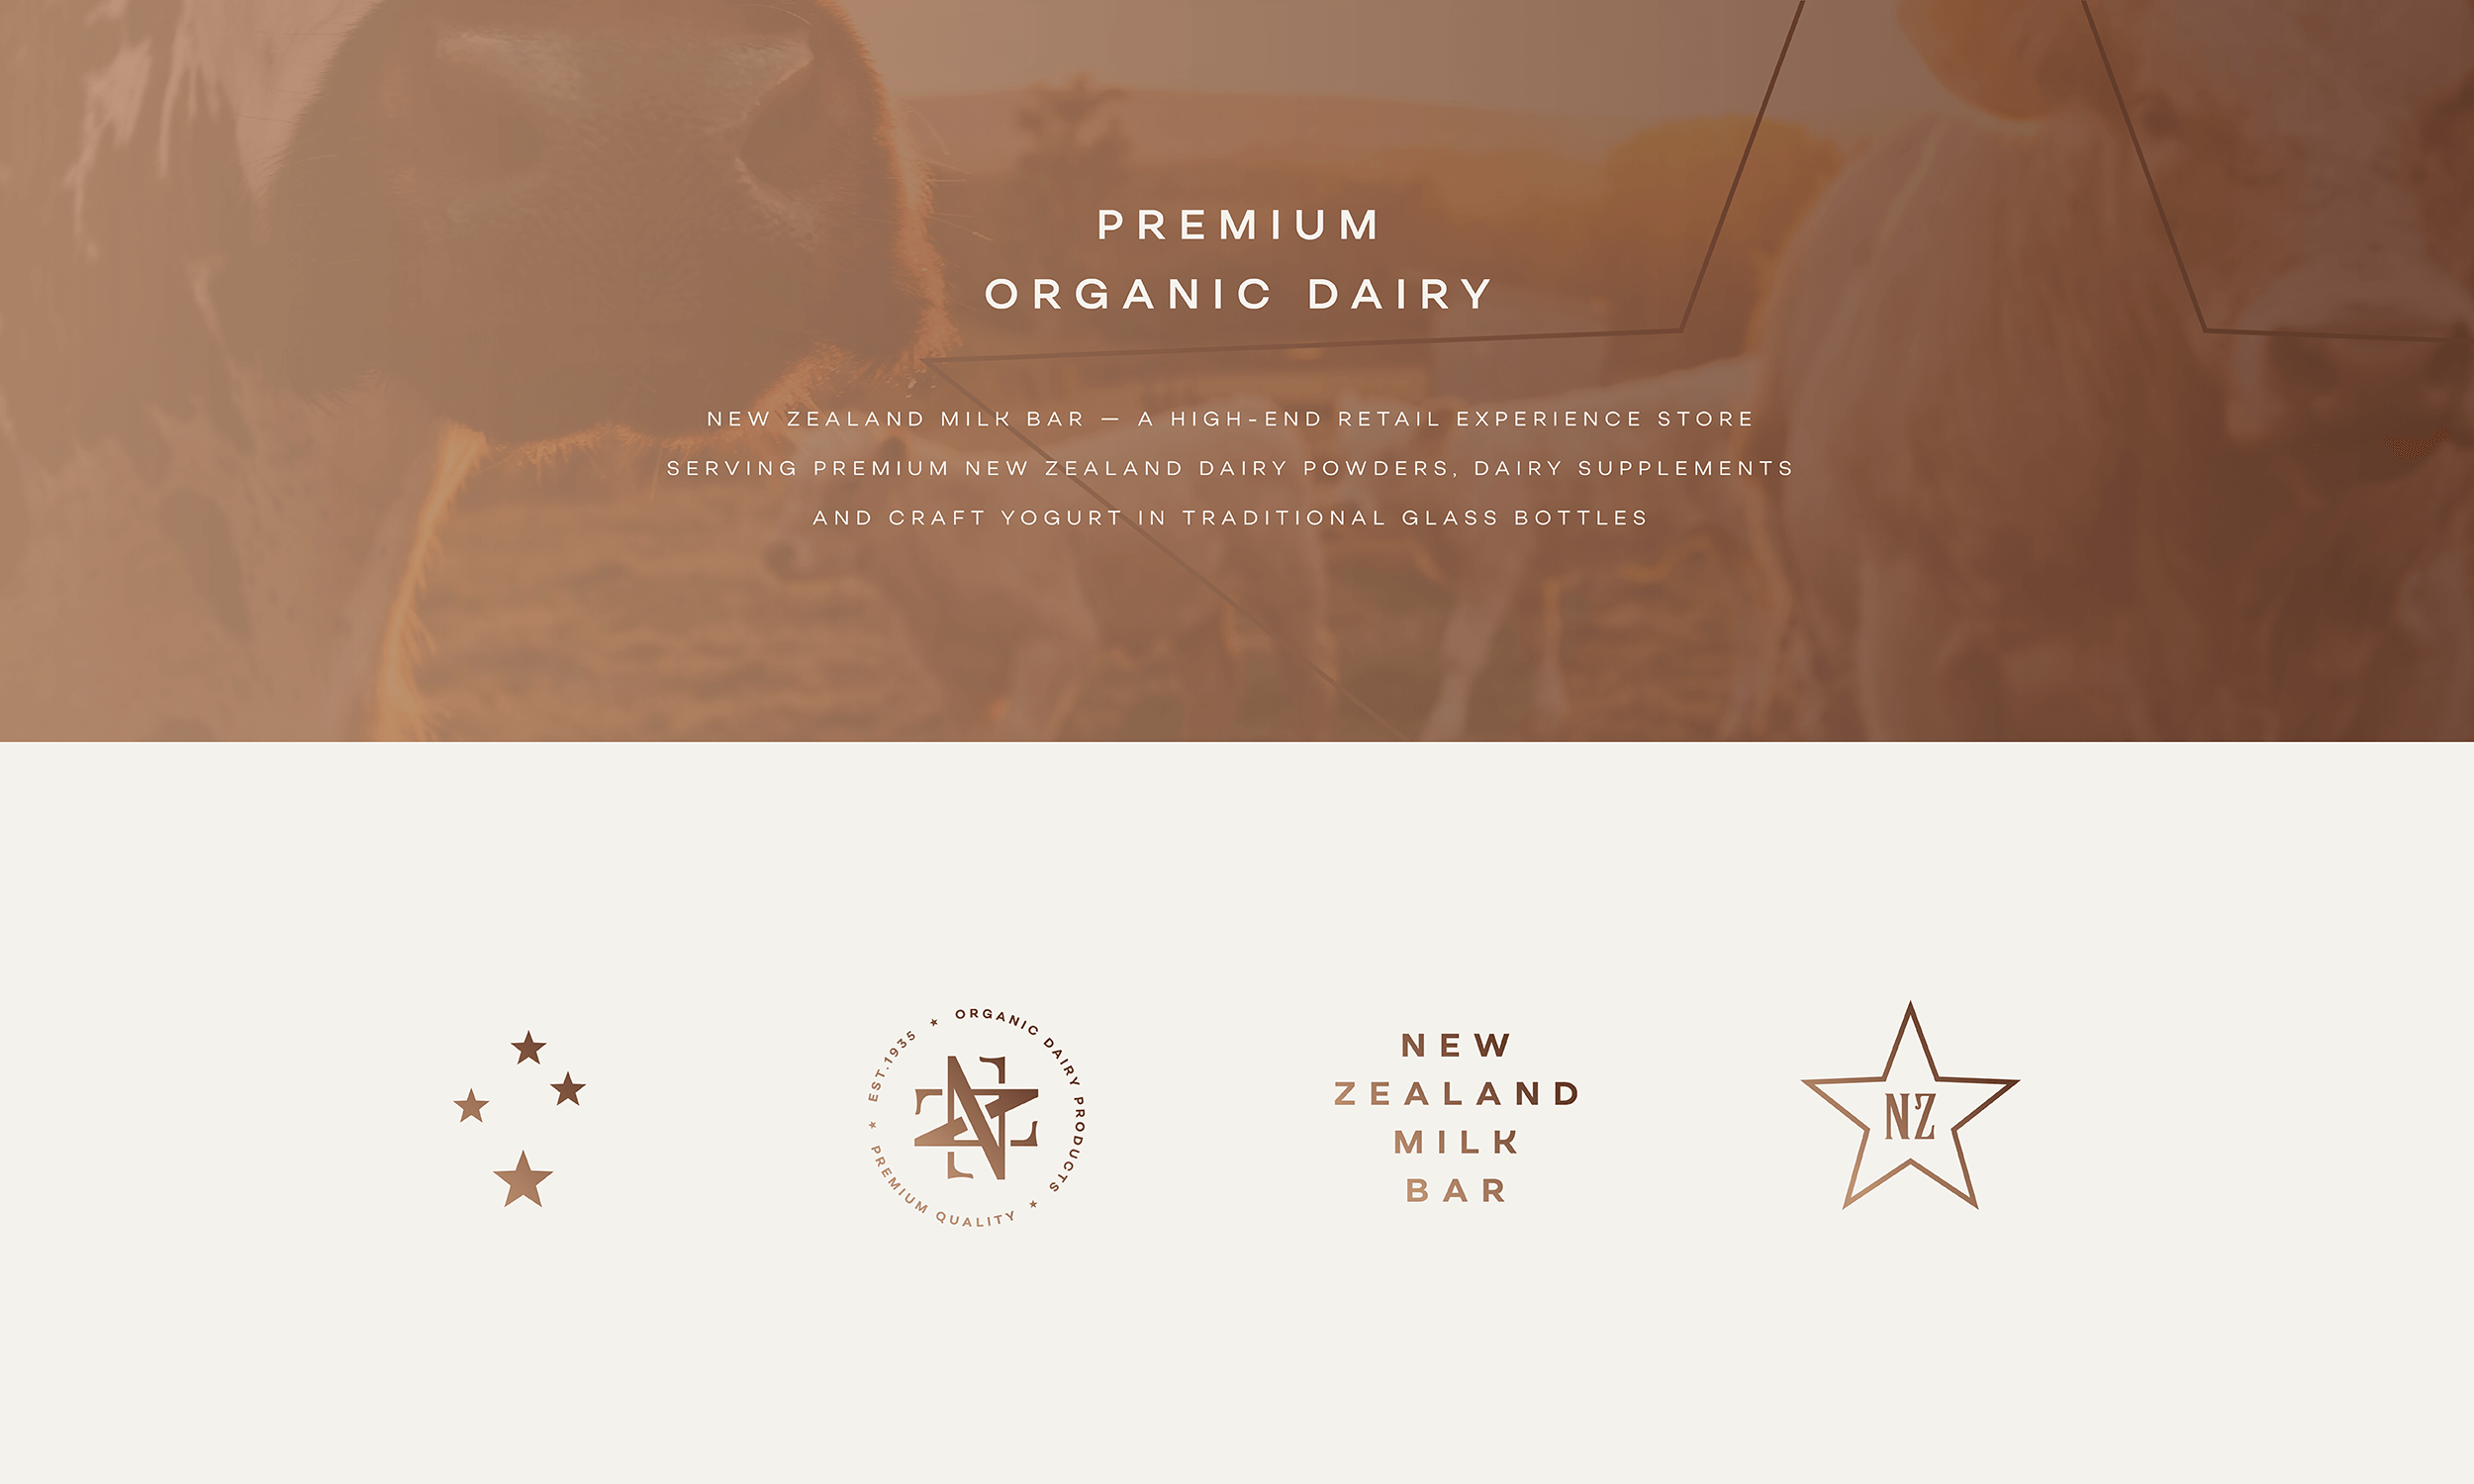 New-Zealand-Milk-Bar-Logo-Design-Brand-Freelance-Graphic-Designer-Studio-Agency-Margate-Kent3